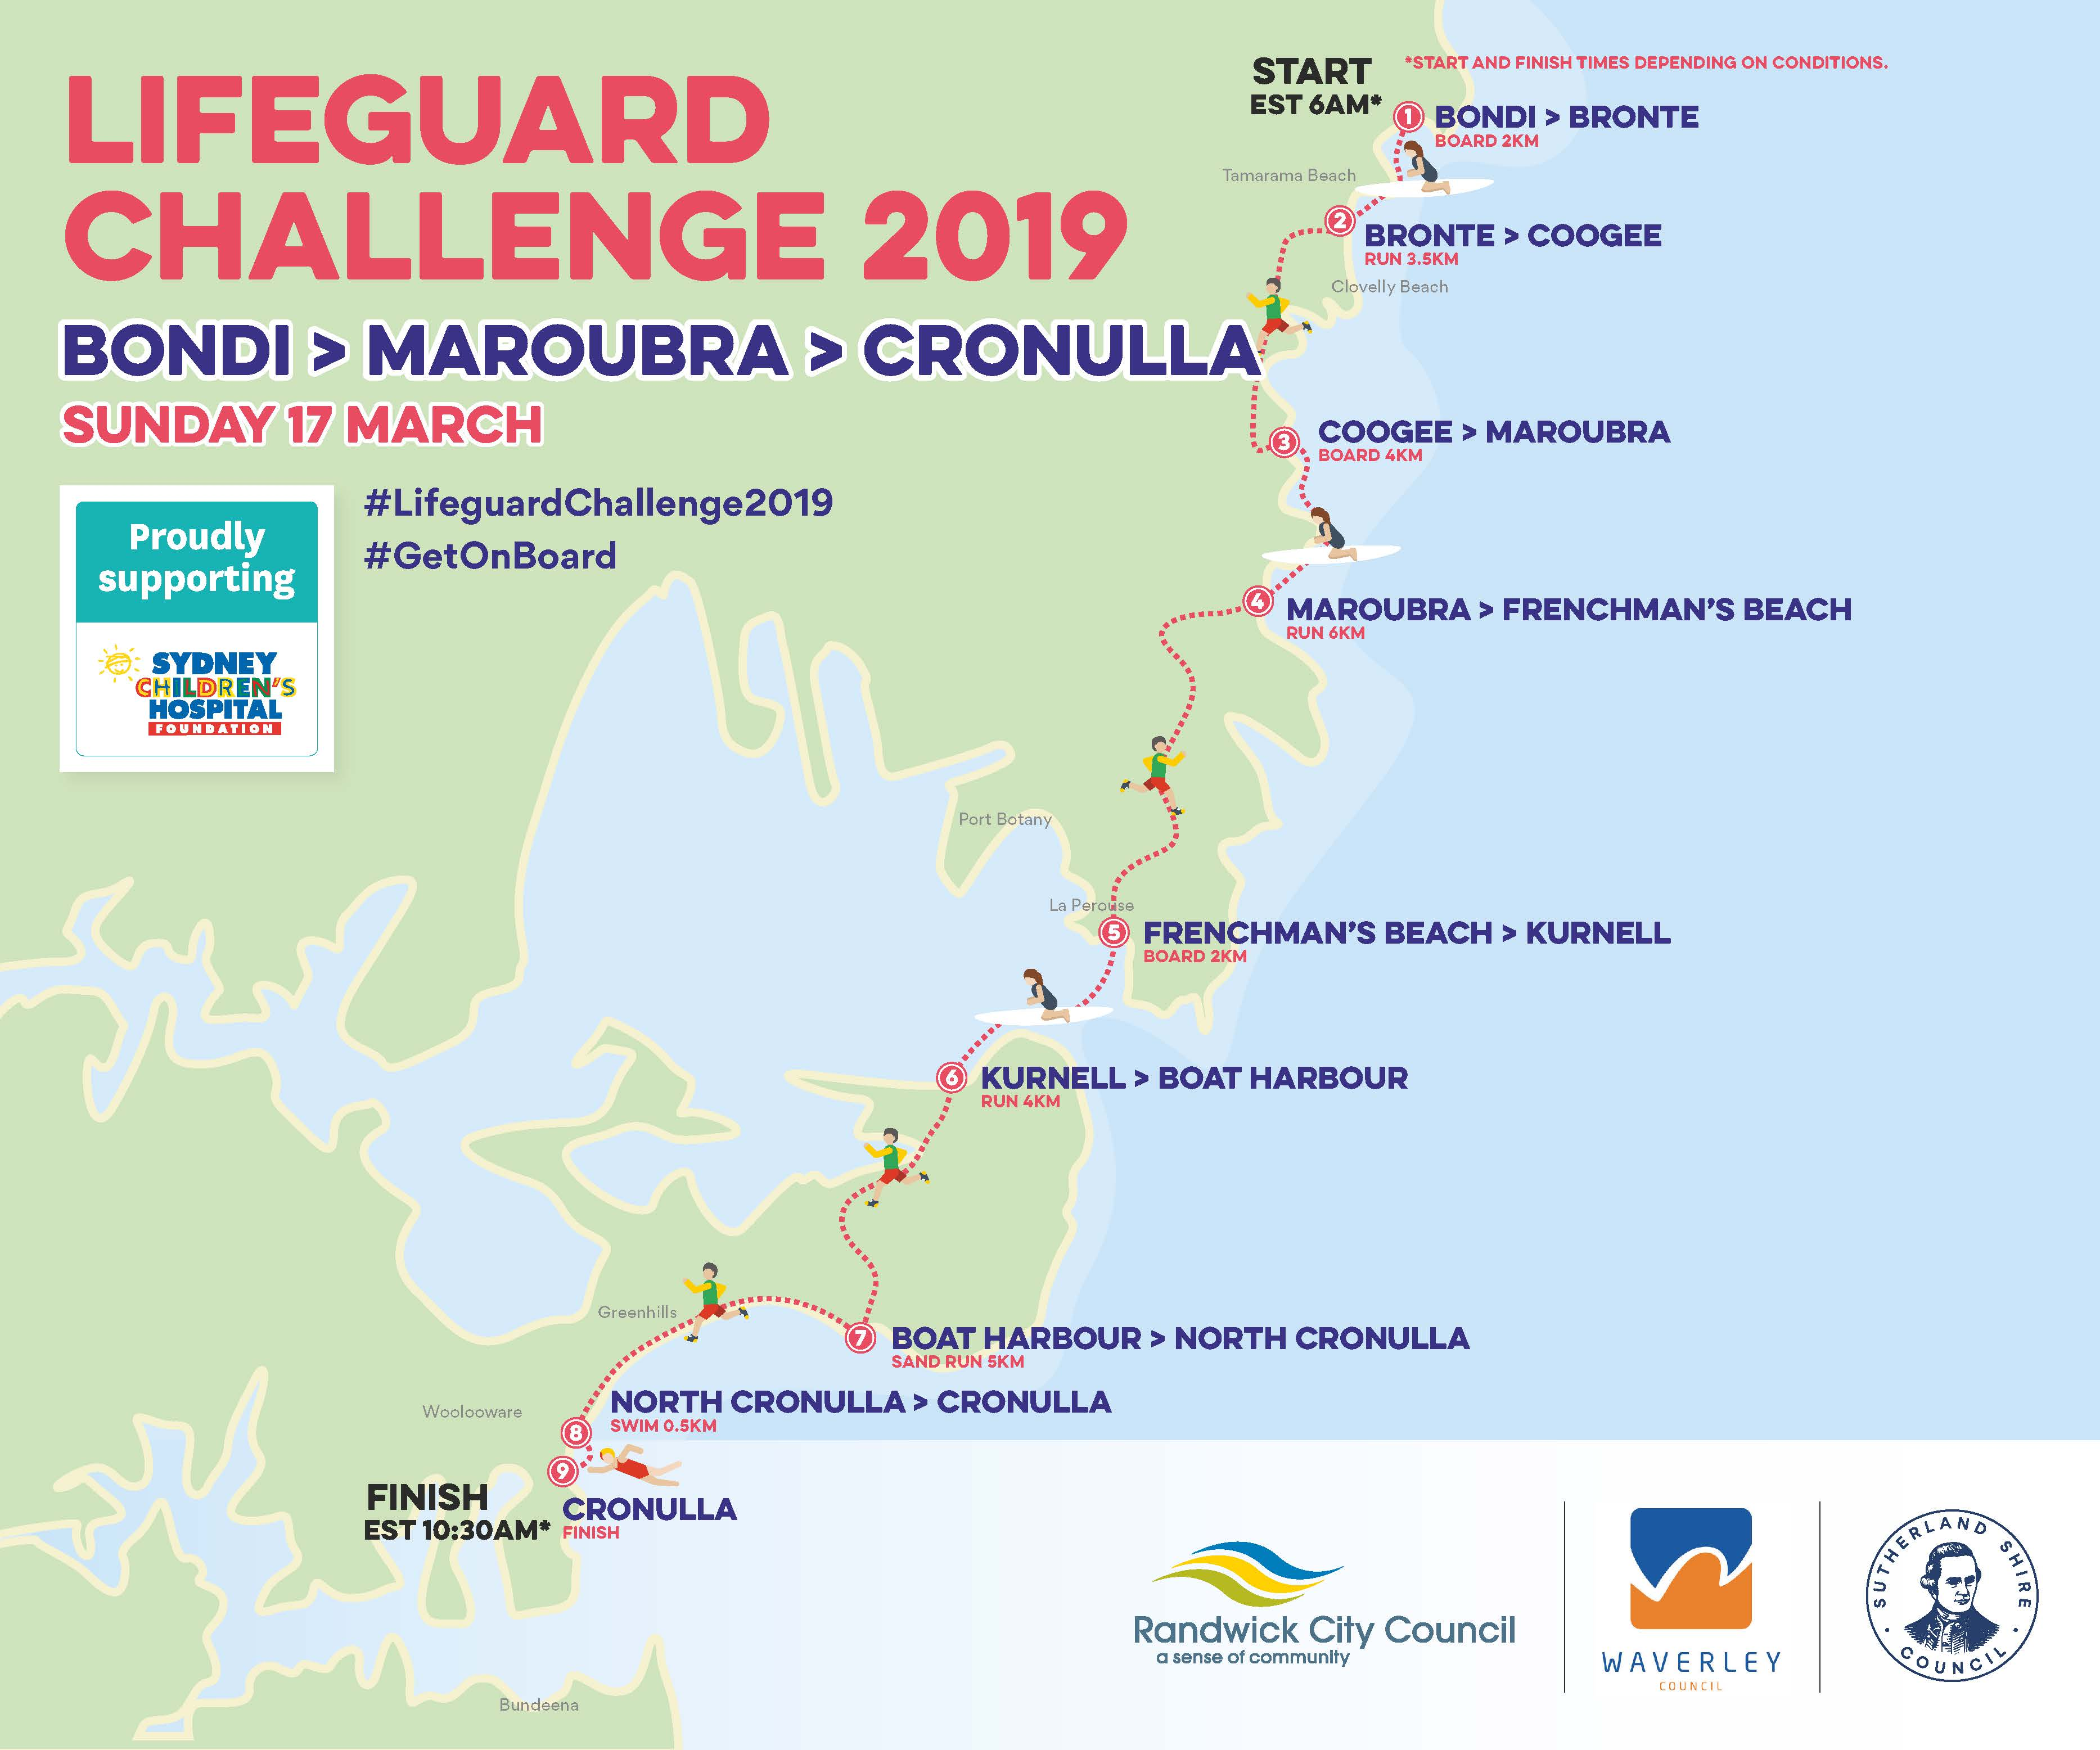 2019 Lifeguard challenger - Course map, the course is shown as running from Bondi to Maroubra to Cronulla course map